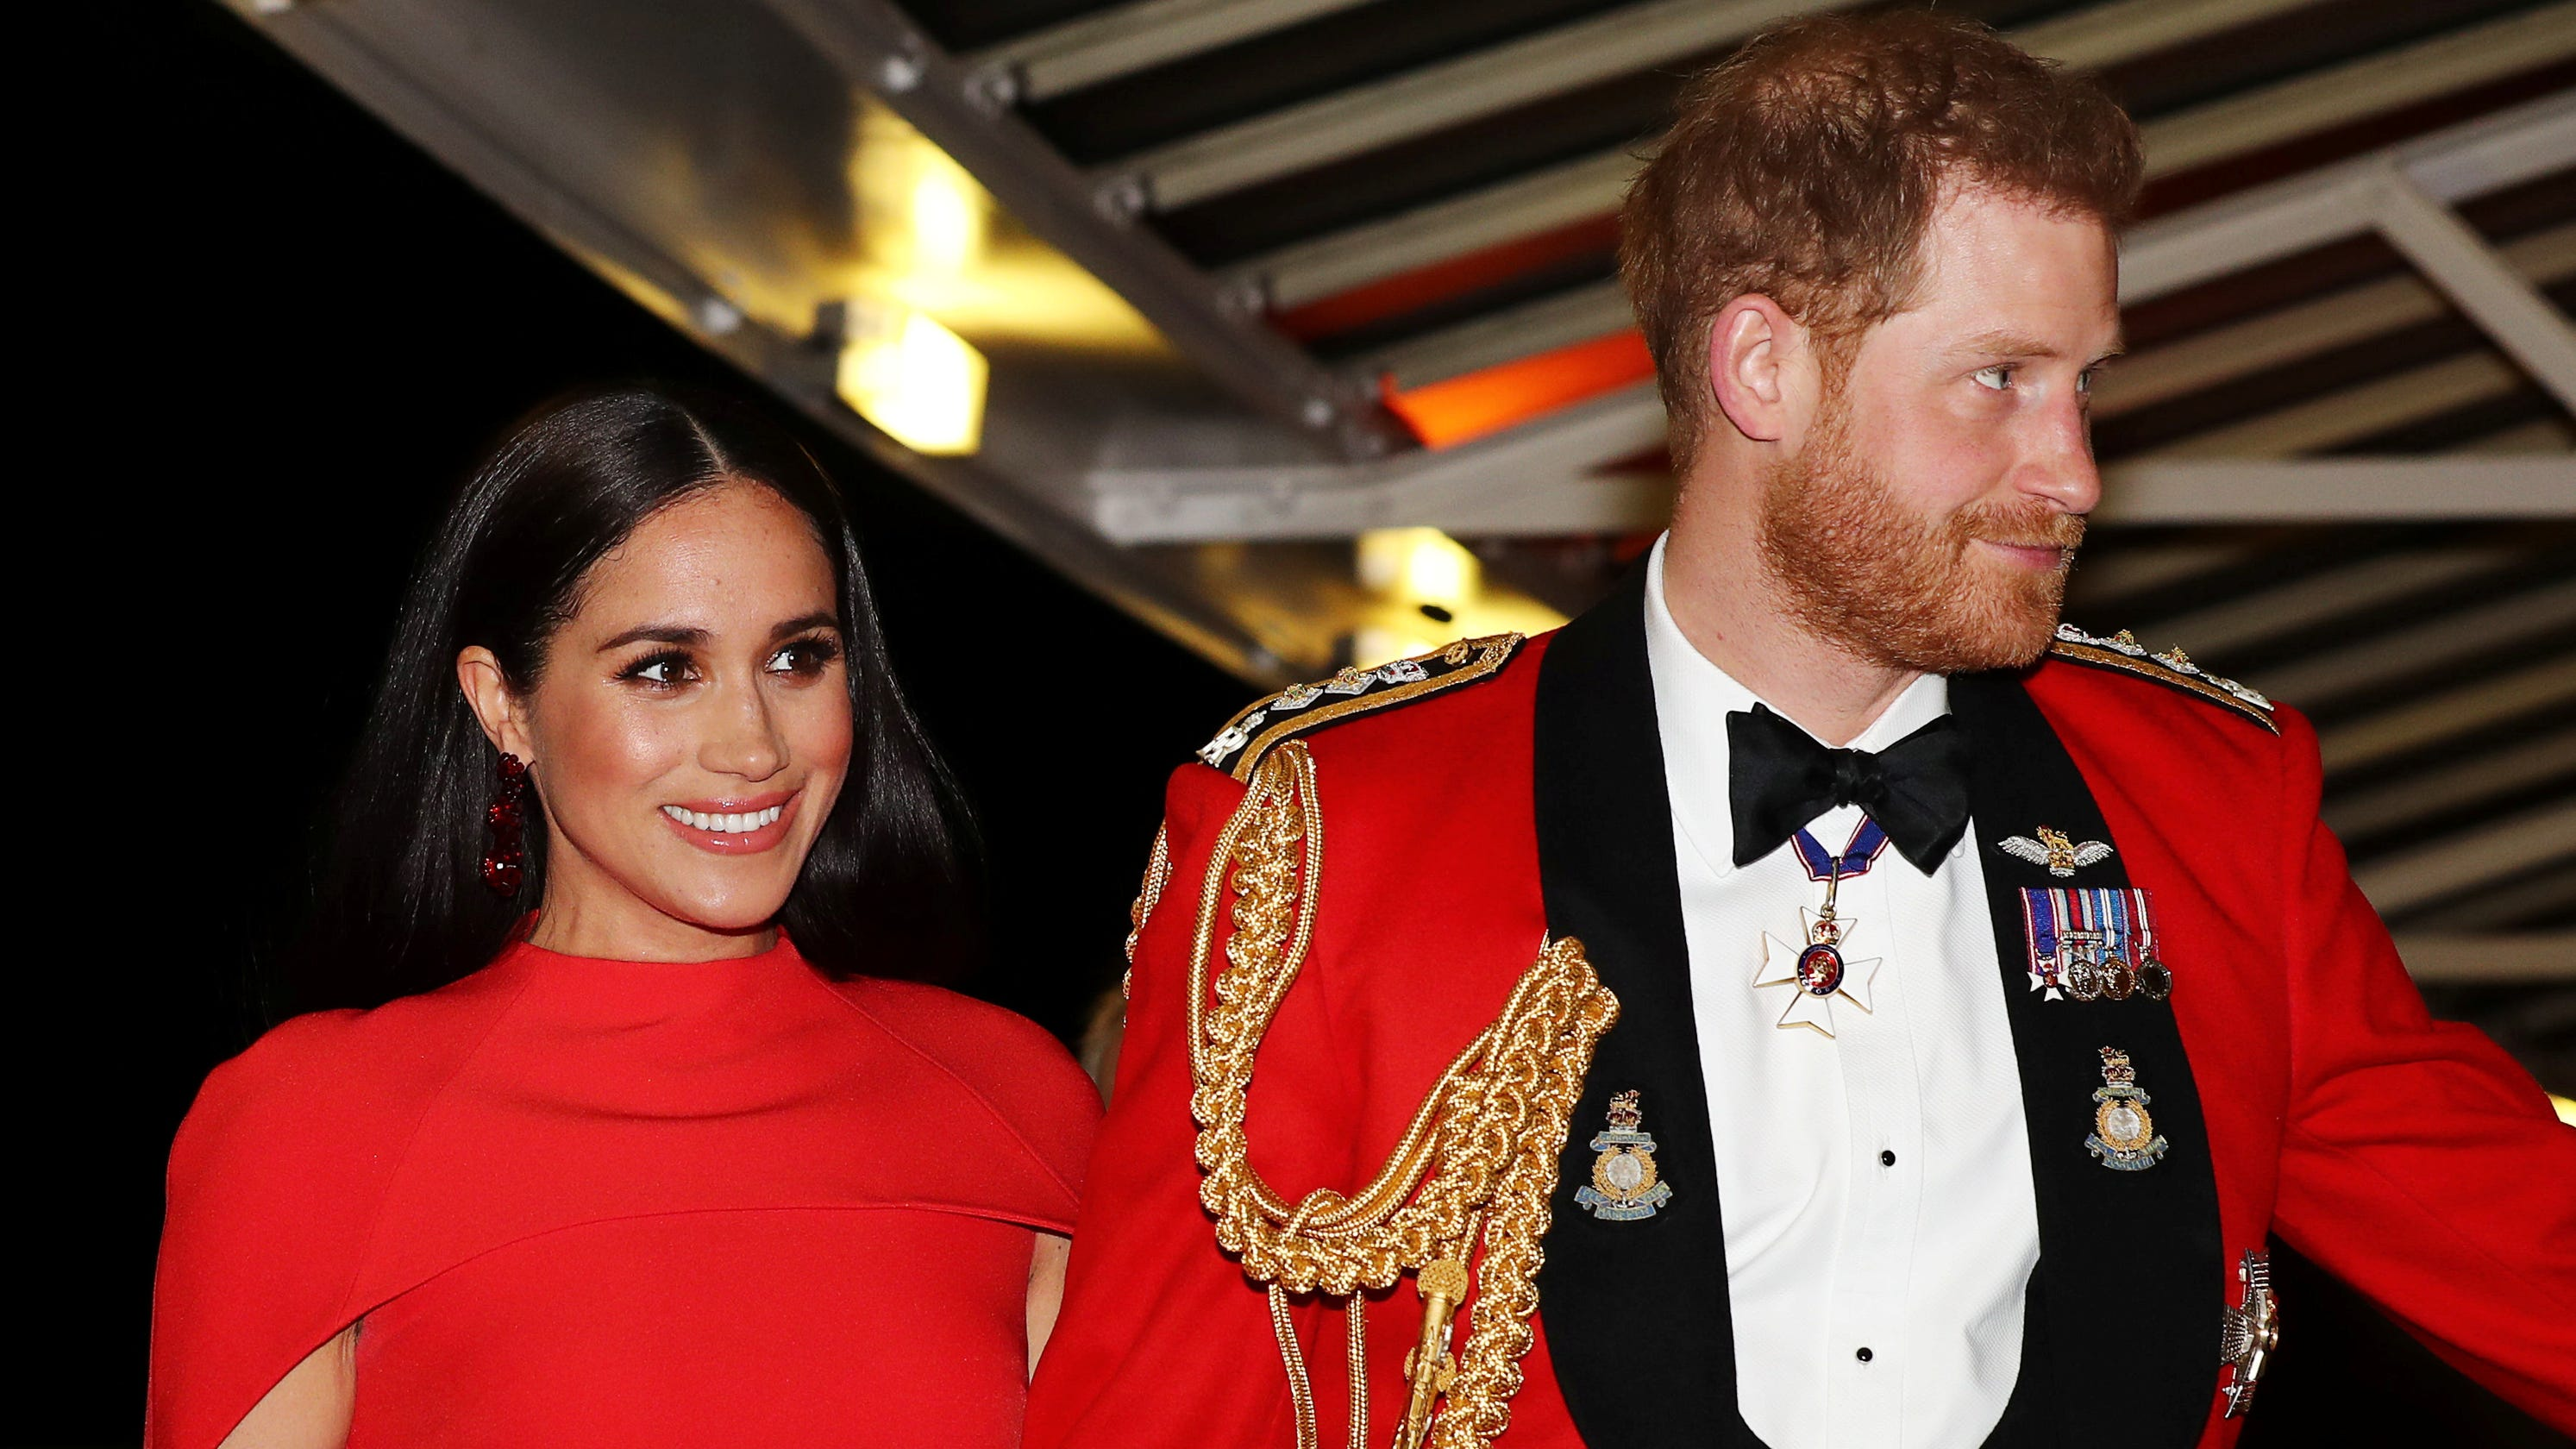 Prince Harry wins correction, apology from tabloid in latest legal victory over media - USA TODAY